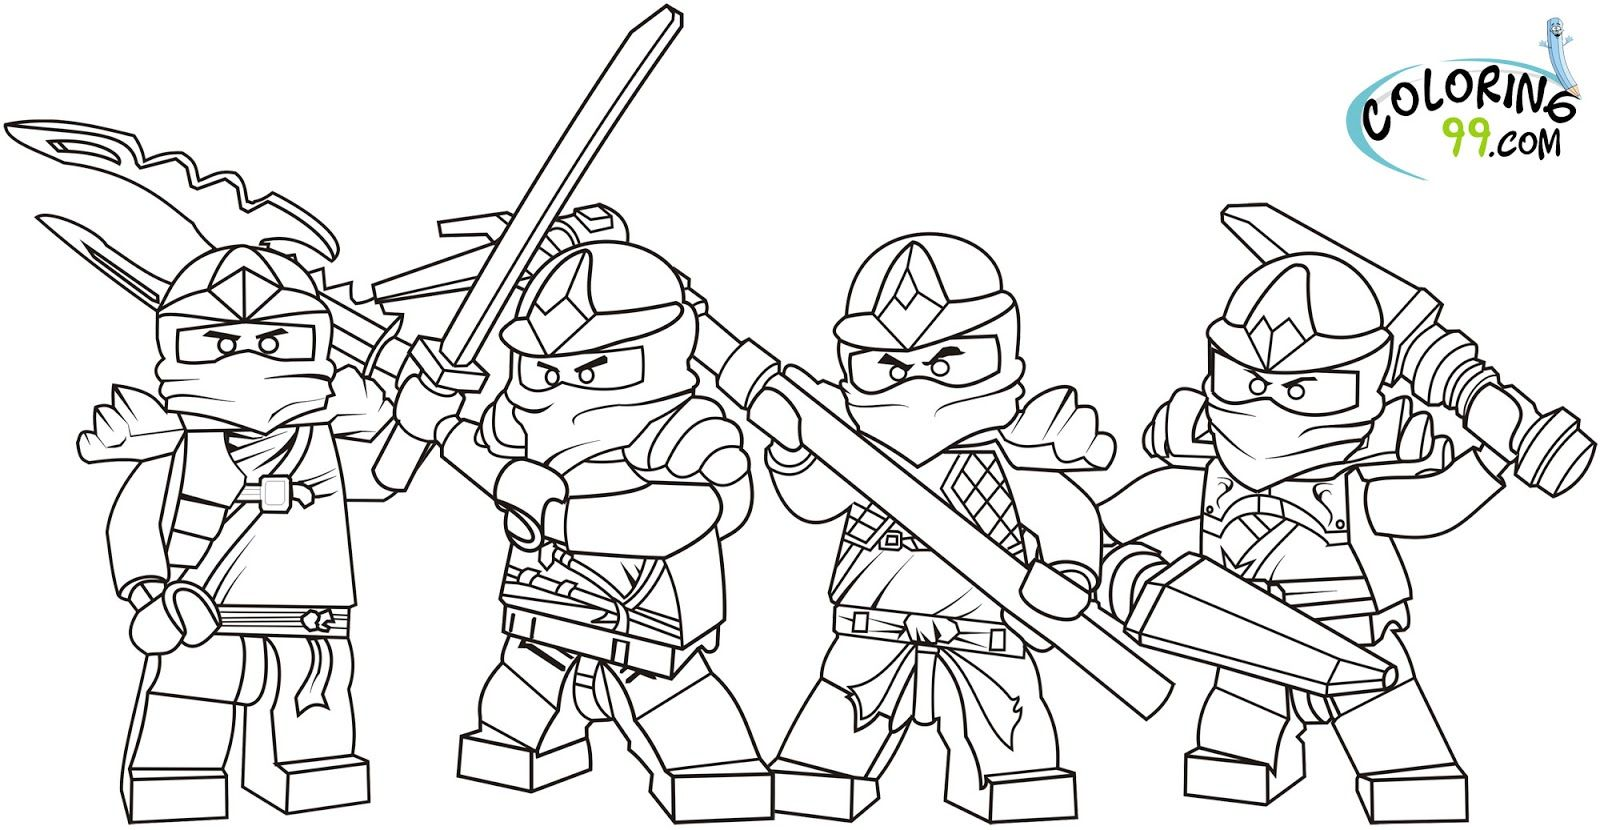 Lego Dc Super Heros Caloring Pages Lego Ninjago Coloring Pages